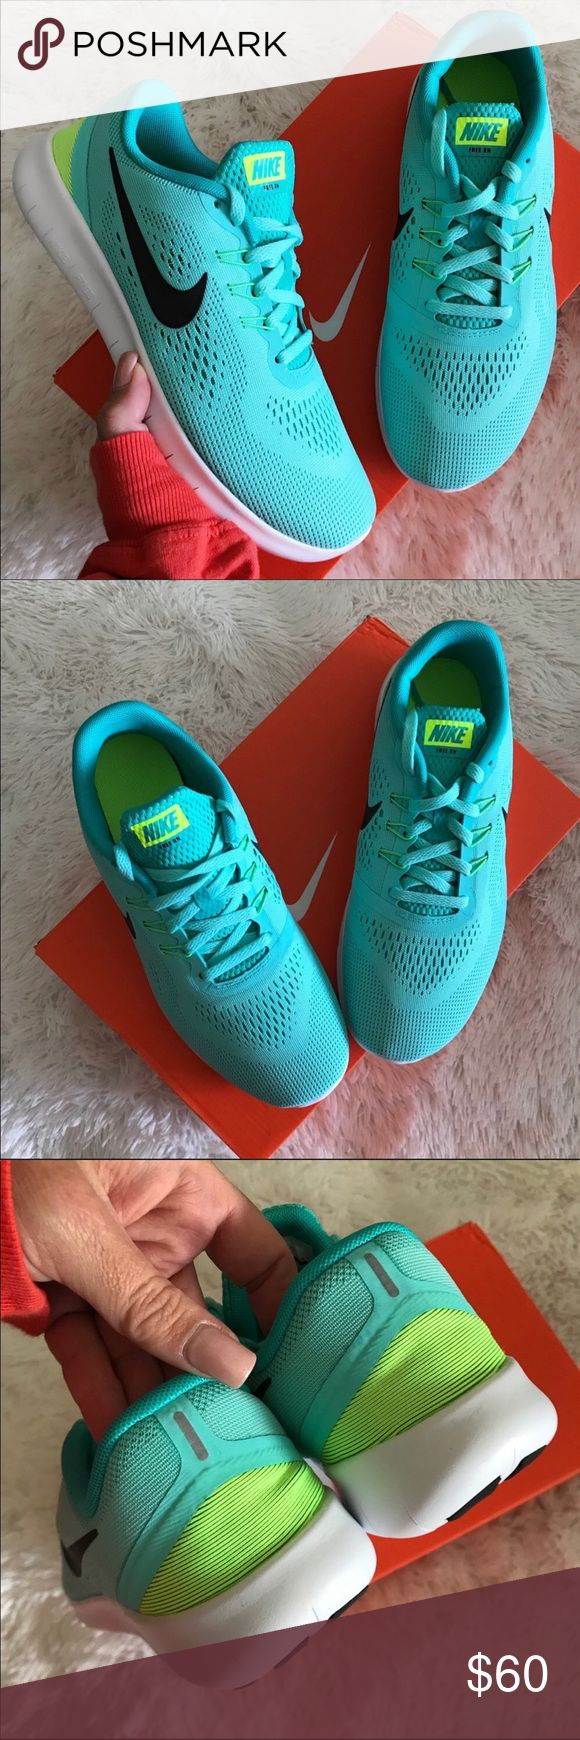 NEW 💠 NIKE FREE RN FITS SIZE 6.5 WOMEN BRAND NEW, NIKE FREE! Cute, cozy & comfy NIKES | LUXURIOUS TIFFANY COLOR! ✨💠 Original NIKE box no lid.   ORDER YOUR WOMANS SHOE SIZE 5 youth = 6.5 WOMEN   ALL SIZES LISTED ACCORDING TO NIKE'S SIZE CHART. PLEASE KNOW YOUR YOUTH SIZE PRIOR TO PURCHASING. ✨💠  Ships same or next day from my smoke free home.   PRICED FIRM, offers will be considered through the offer button only. Bundle to save. ✨ 💠  100% authentic & direct from NIKE Nike Shoes Athletic…